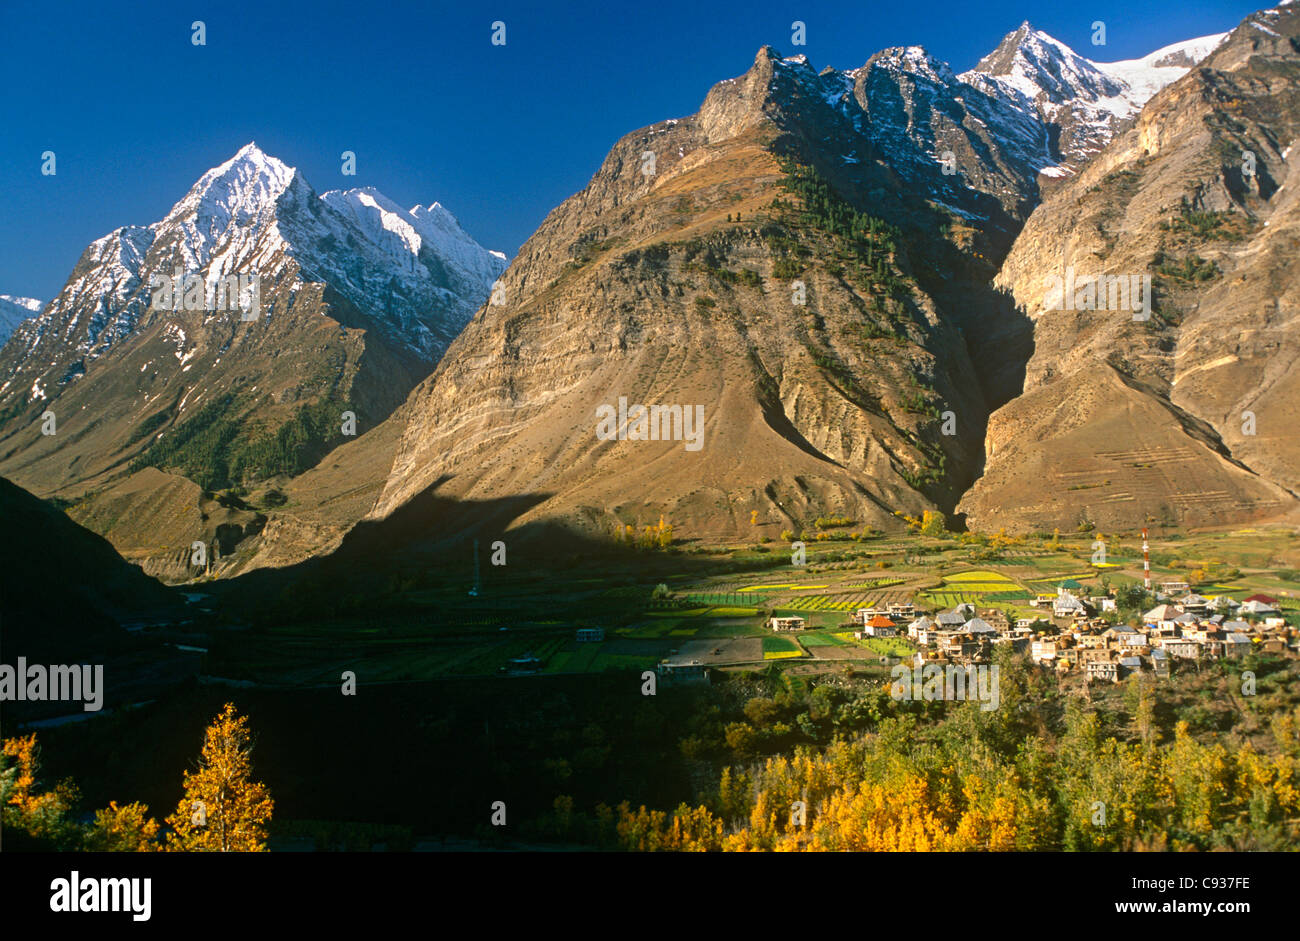 India, Himachal Pradesh, Lahaul, near Keylong. The Pattan Valley at Tandi marks the confluence of the Chandra and - Stock Image